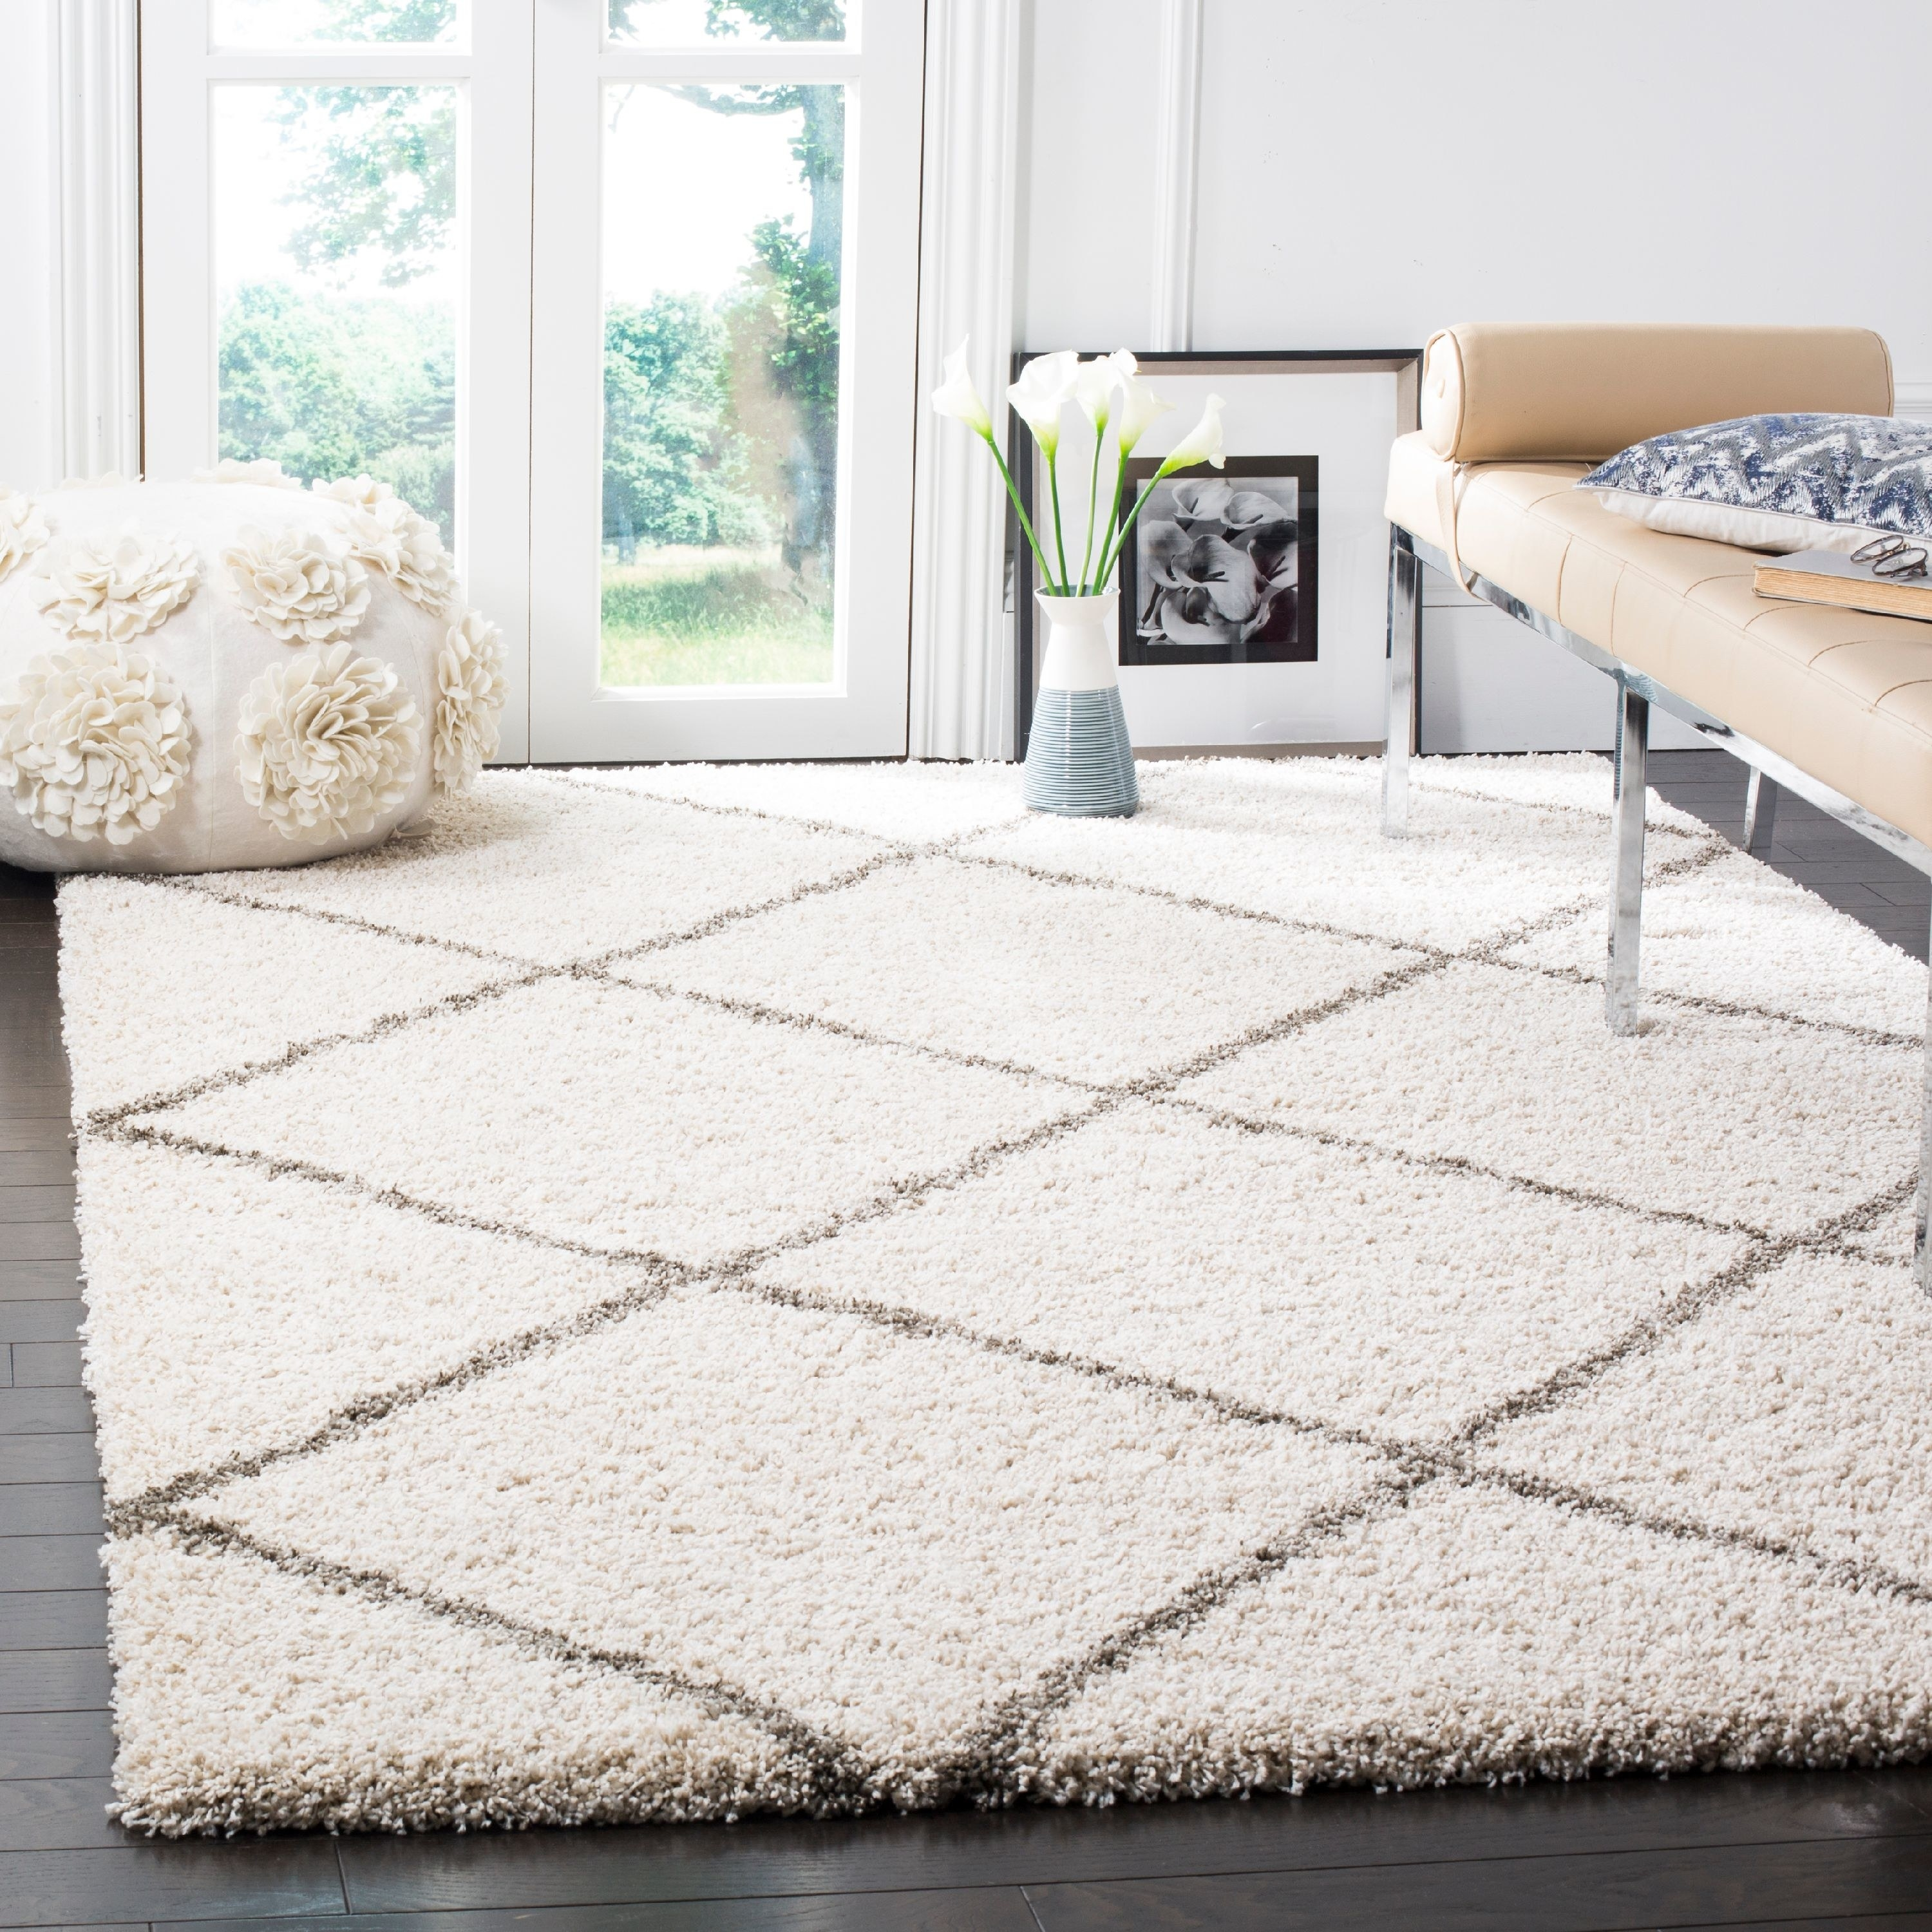 A geometric ivory color rug with gray lines forming diamonds